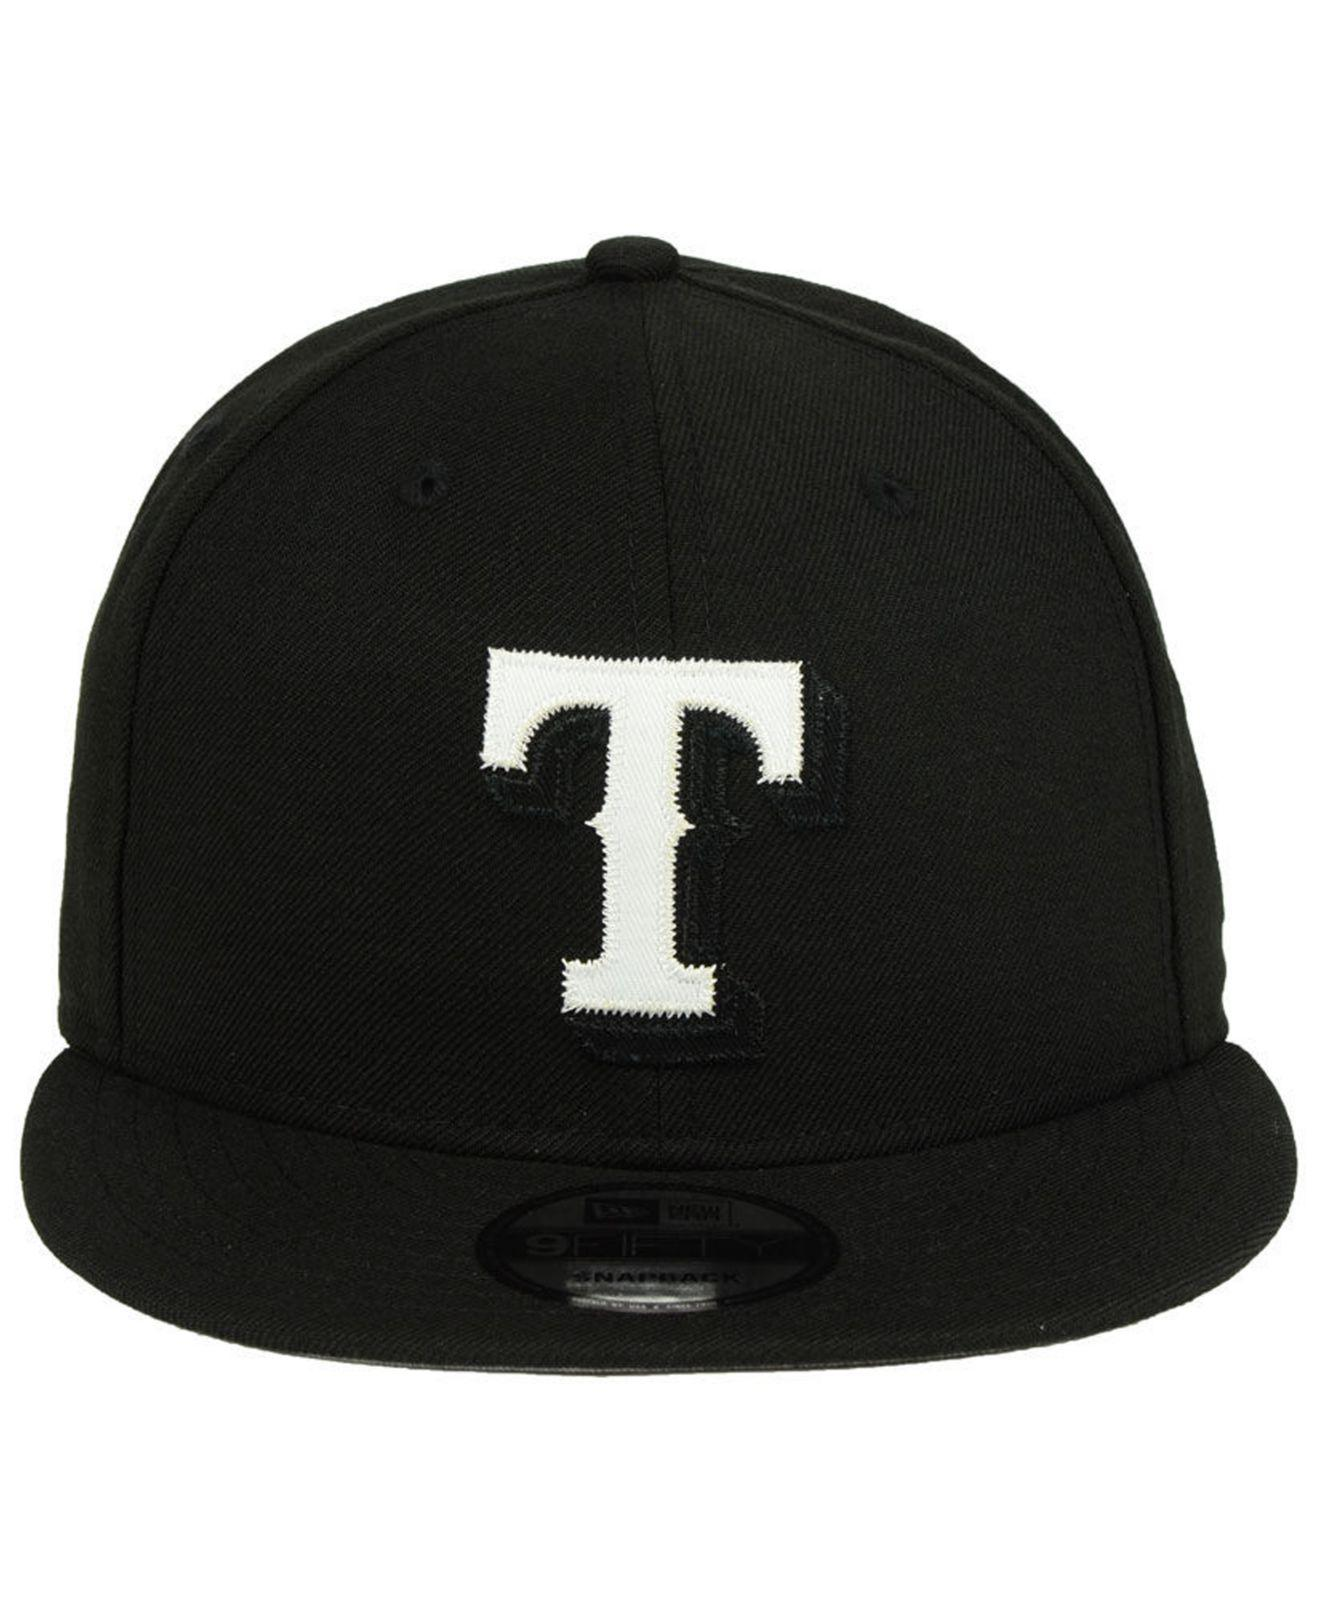 promo code f6d98 761ce reduced lyst ktz texas rangers jersey hook 9fifty snapback cap in black for  men 22c1c ea52c